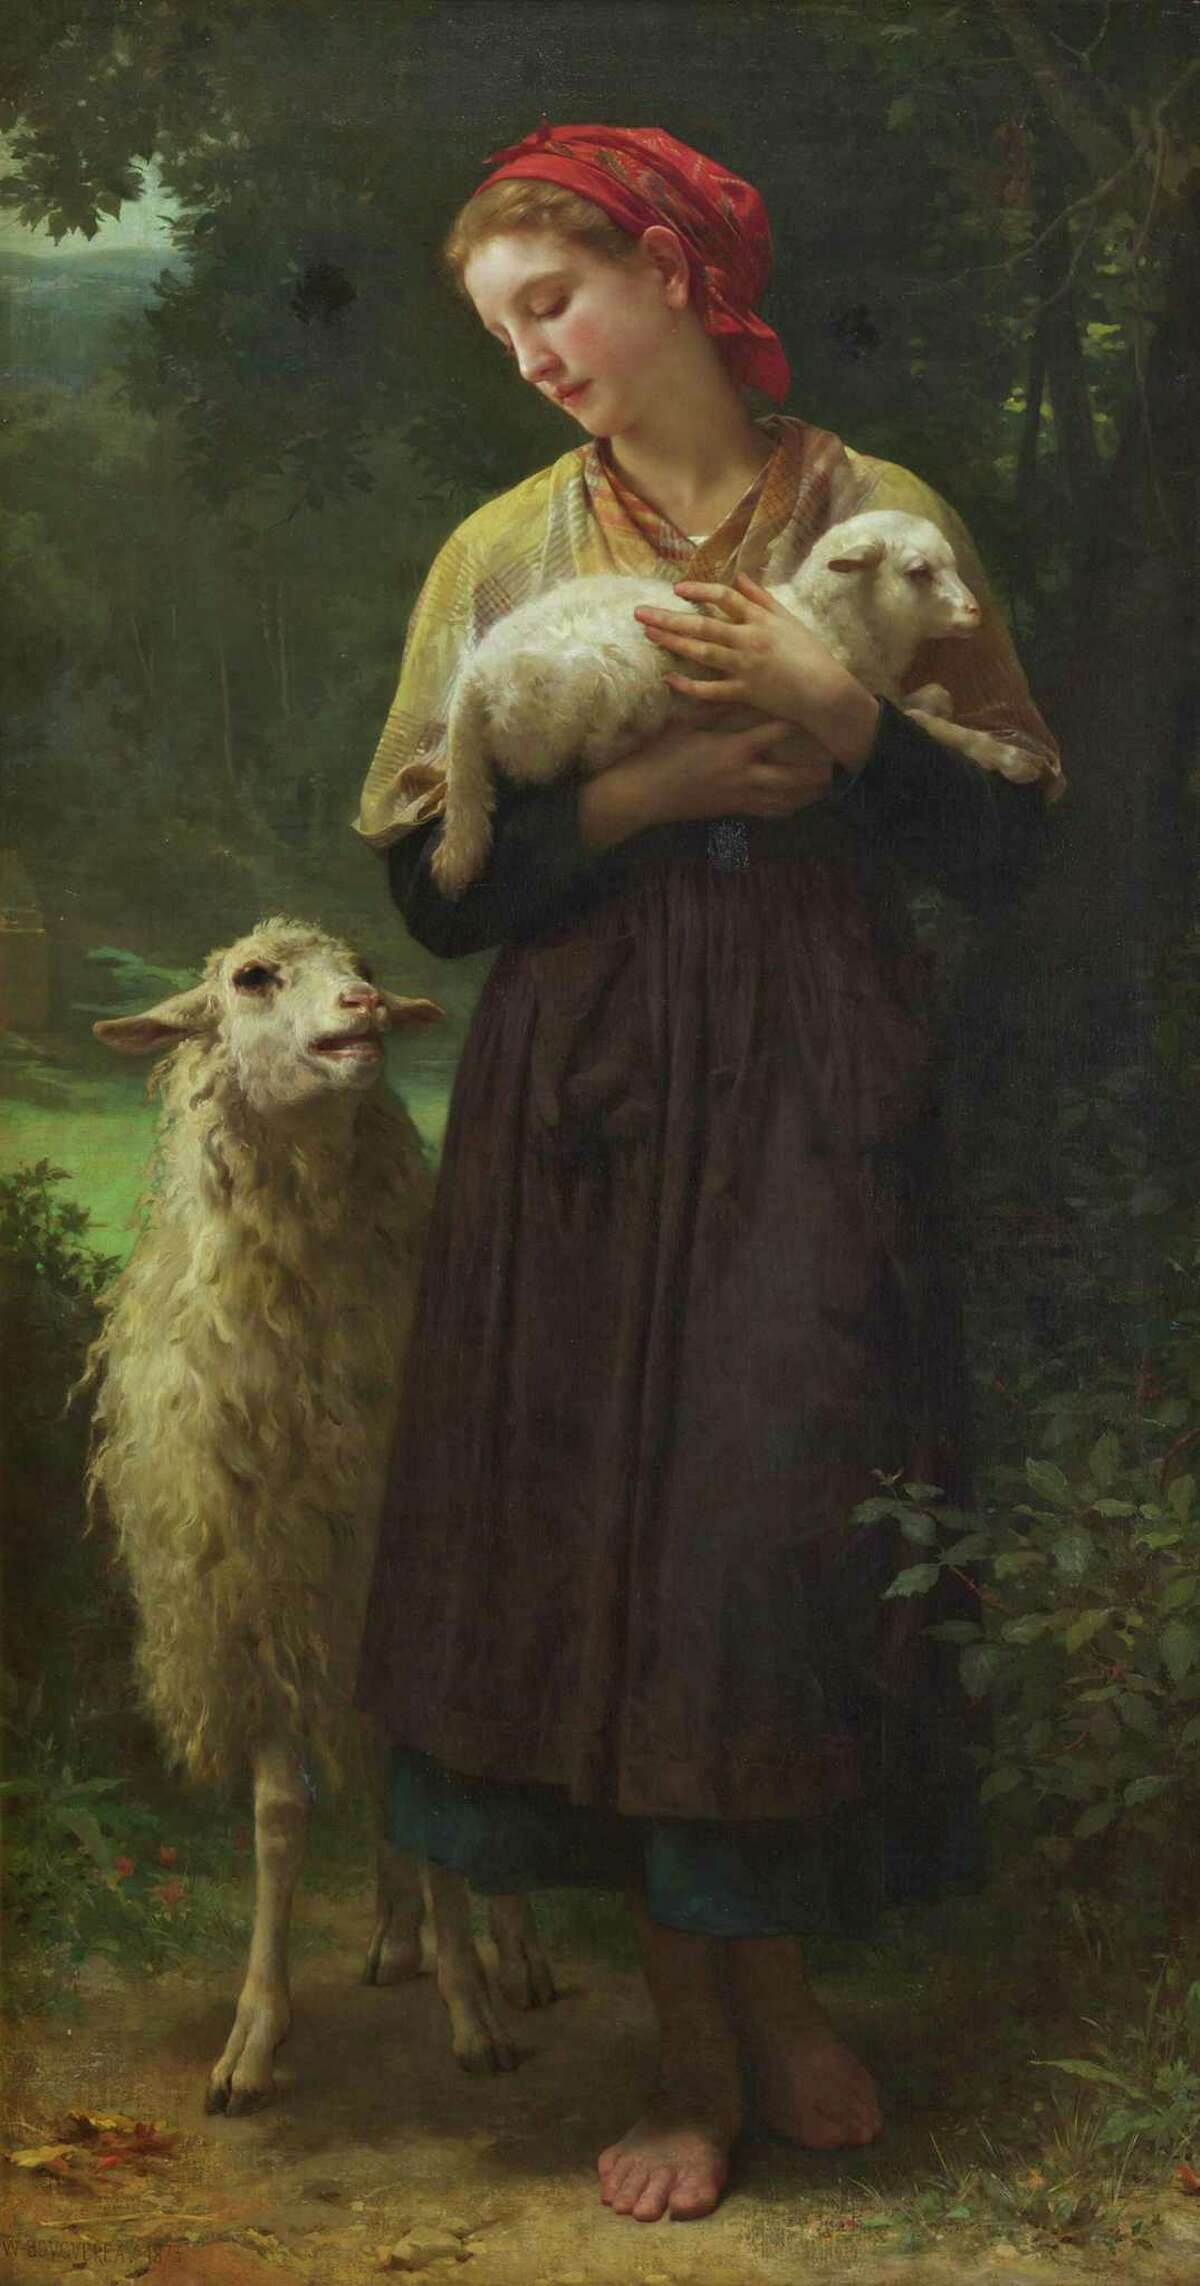 """WILLIAM-ADOLPHE BOUGUEREAU L'Agneau nouveau-né 1873 Oil on canvas Courtesy Berkshire Museum It is one of the 40 works the museum will be auctioning in part to fund a $60 million """"reinvention plan."""""""